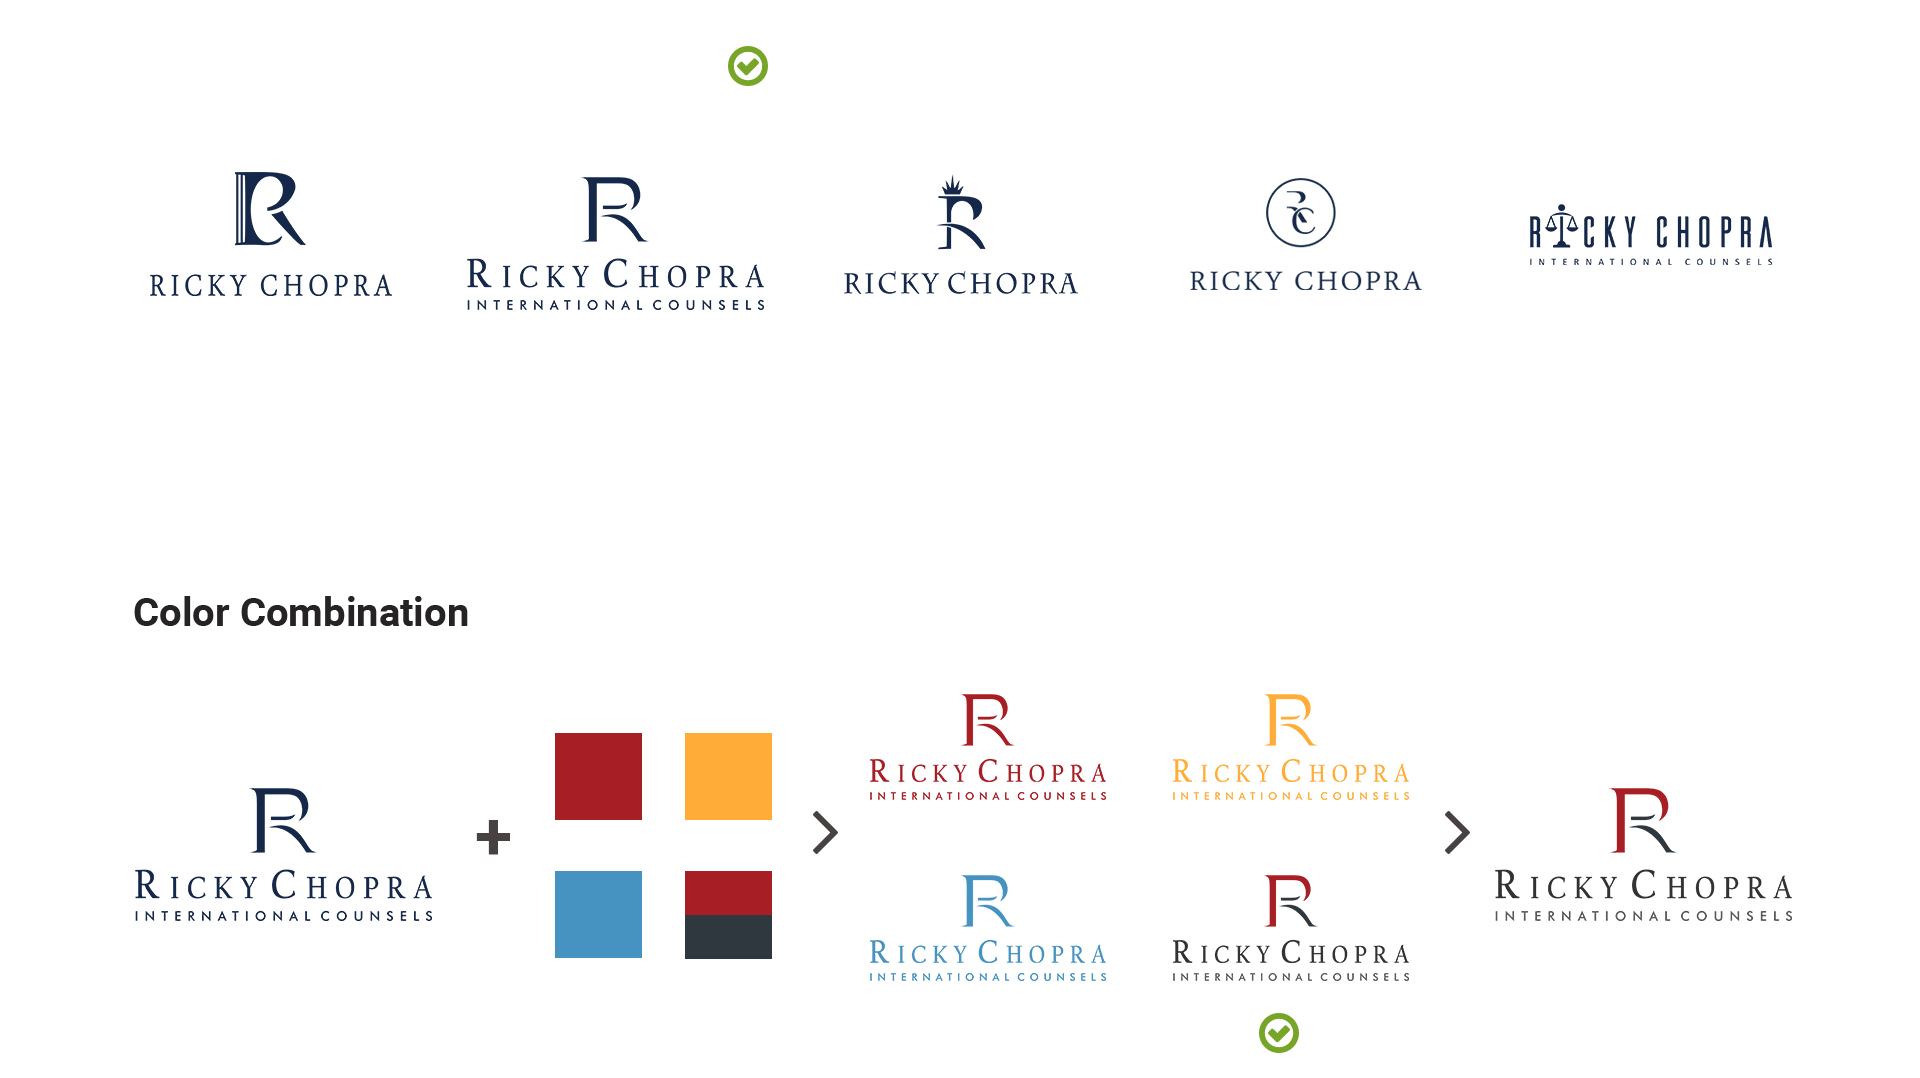 Ricky Chopra Logo Design Concepts